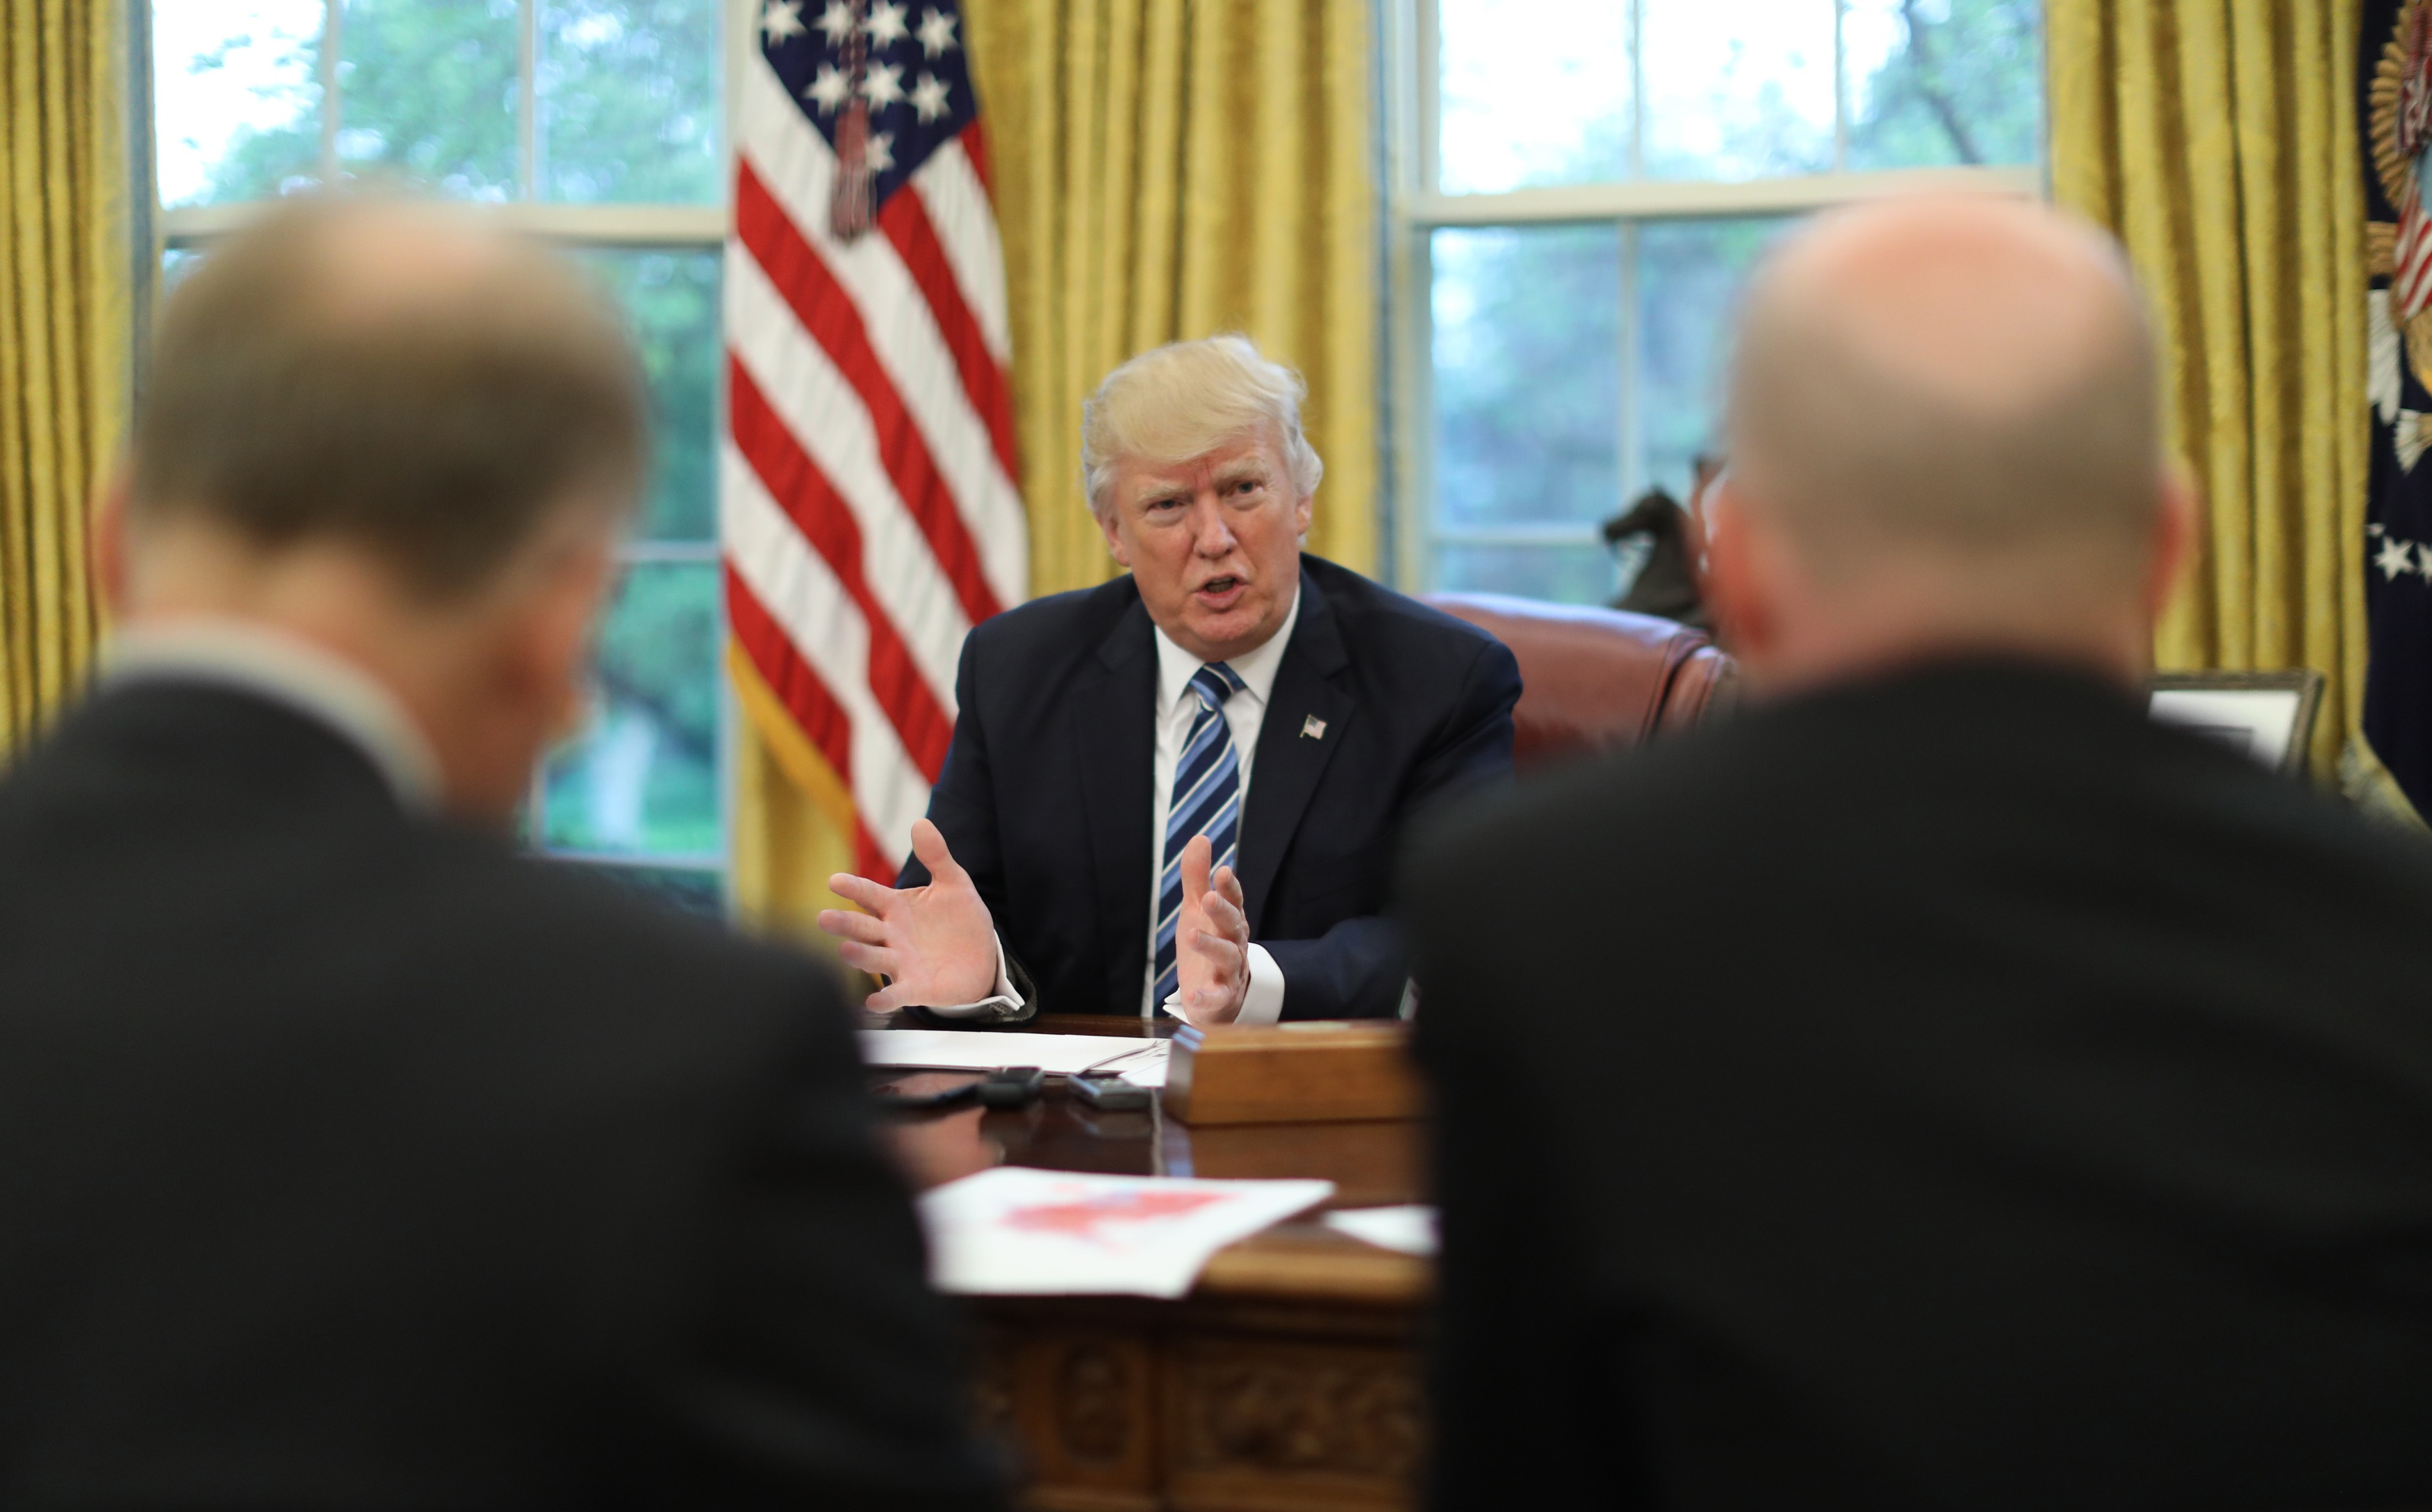 US President Donald Trump speaks during an interview with Reuters in the Oval Office of the White House in Washington, US, April 27, 2017. Credit: Reuters/Carlos Barria